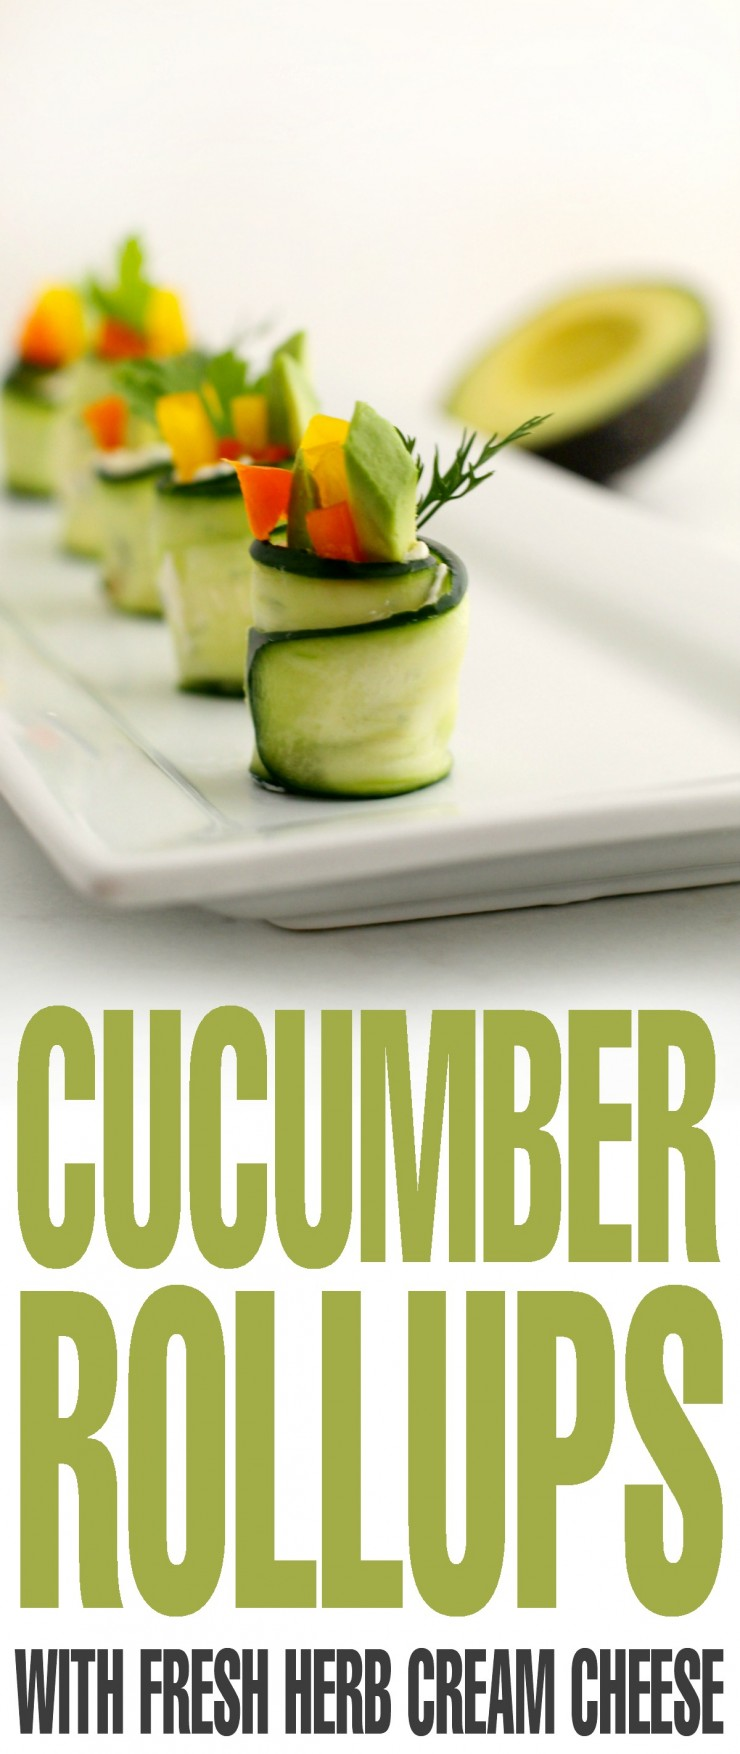 These Cucumber Rollups with Fresh Herb Cream Cheese make for a nice substitution to the typical veggie tray at bbq's and parties. It's also a great way to get the kiddos to eat more veggies since these little crunchy rolls are so fun to eat!